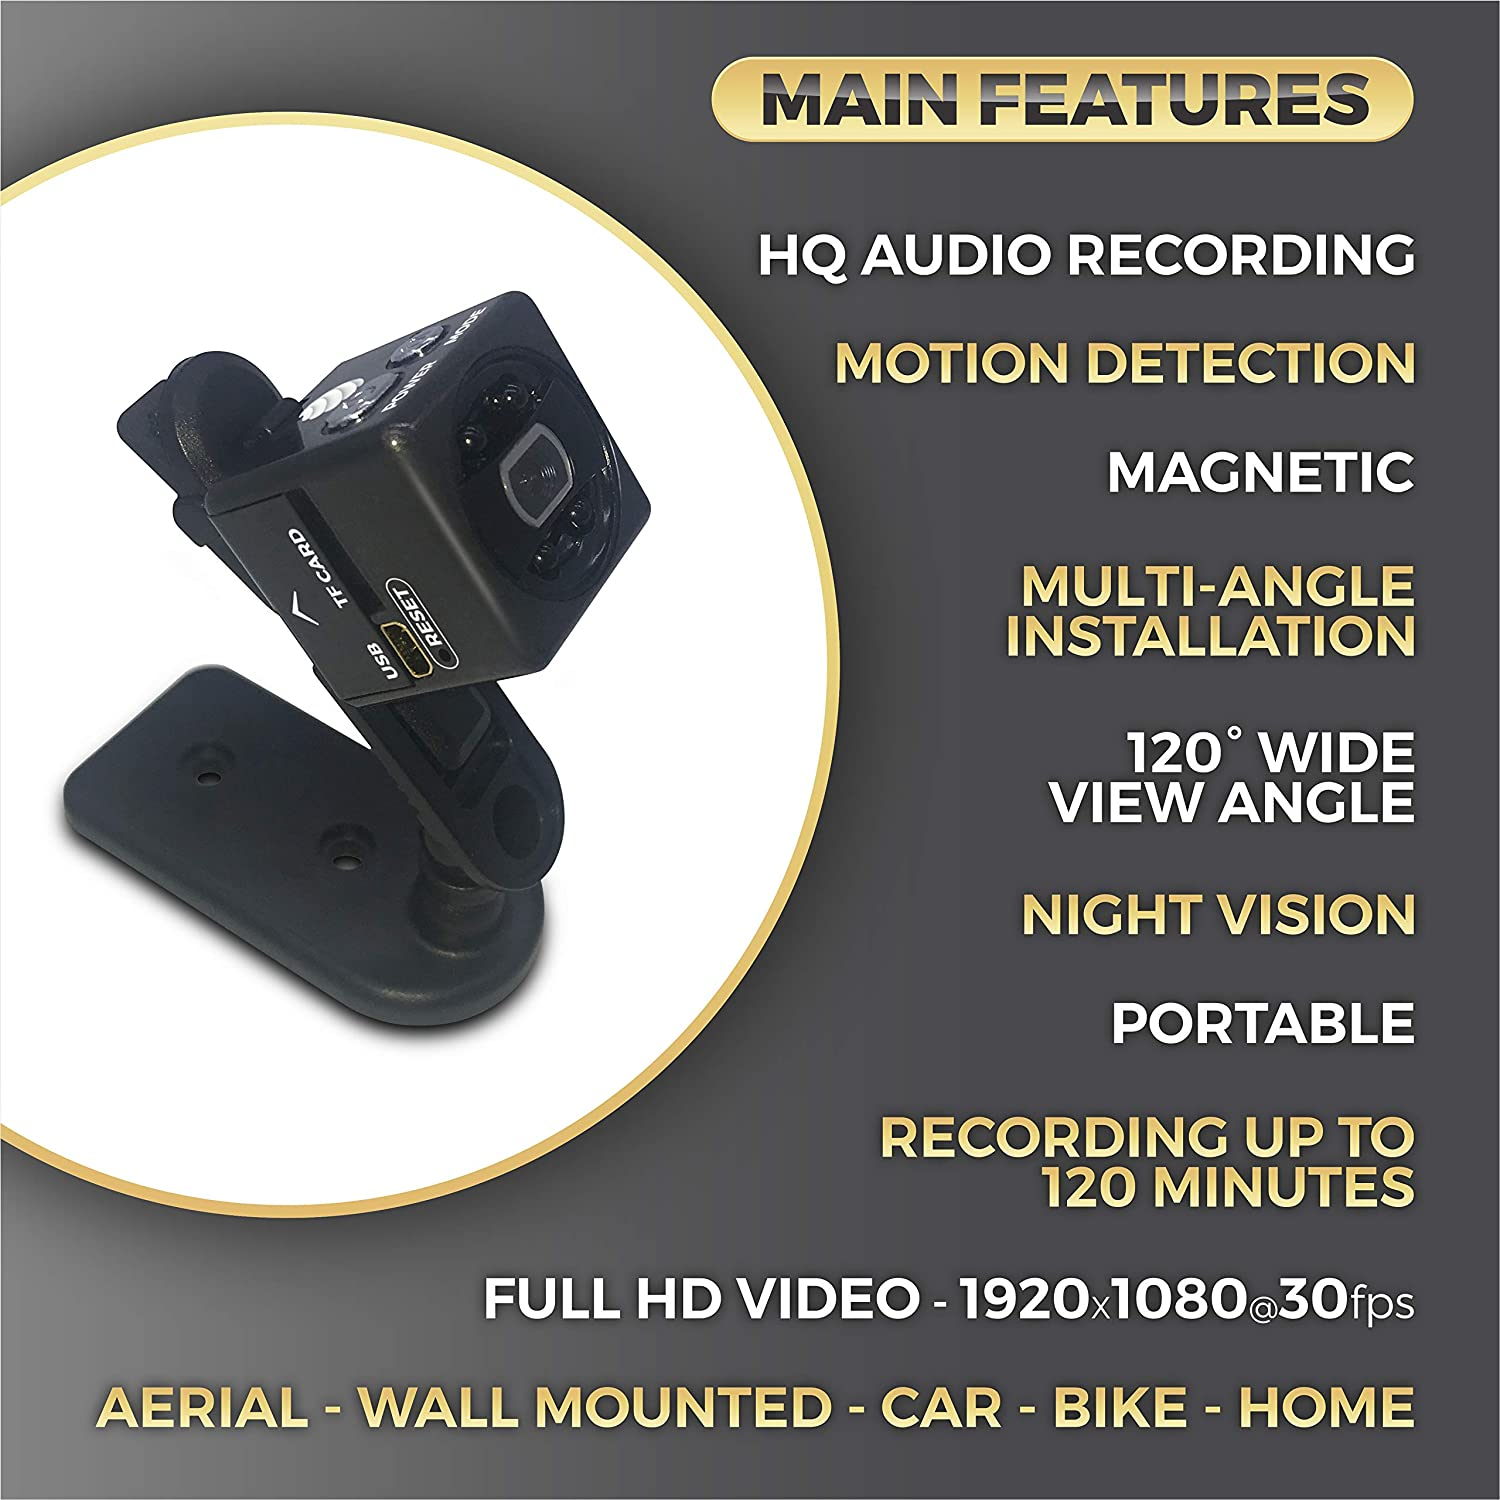 Amazon.com : Mini Hidden Camera - Magnetic Portable Body Spy Cam for Home Security with Night Vision - Motion Detection Functions and High Clarity Audio ...